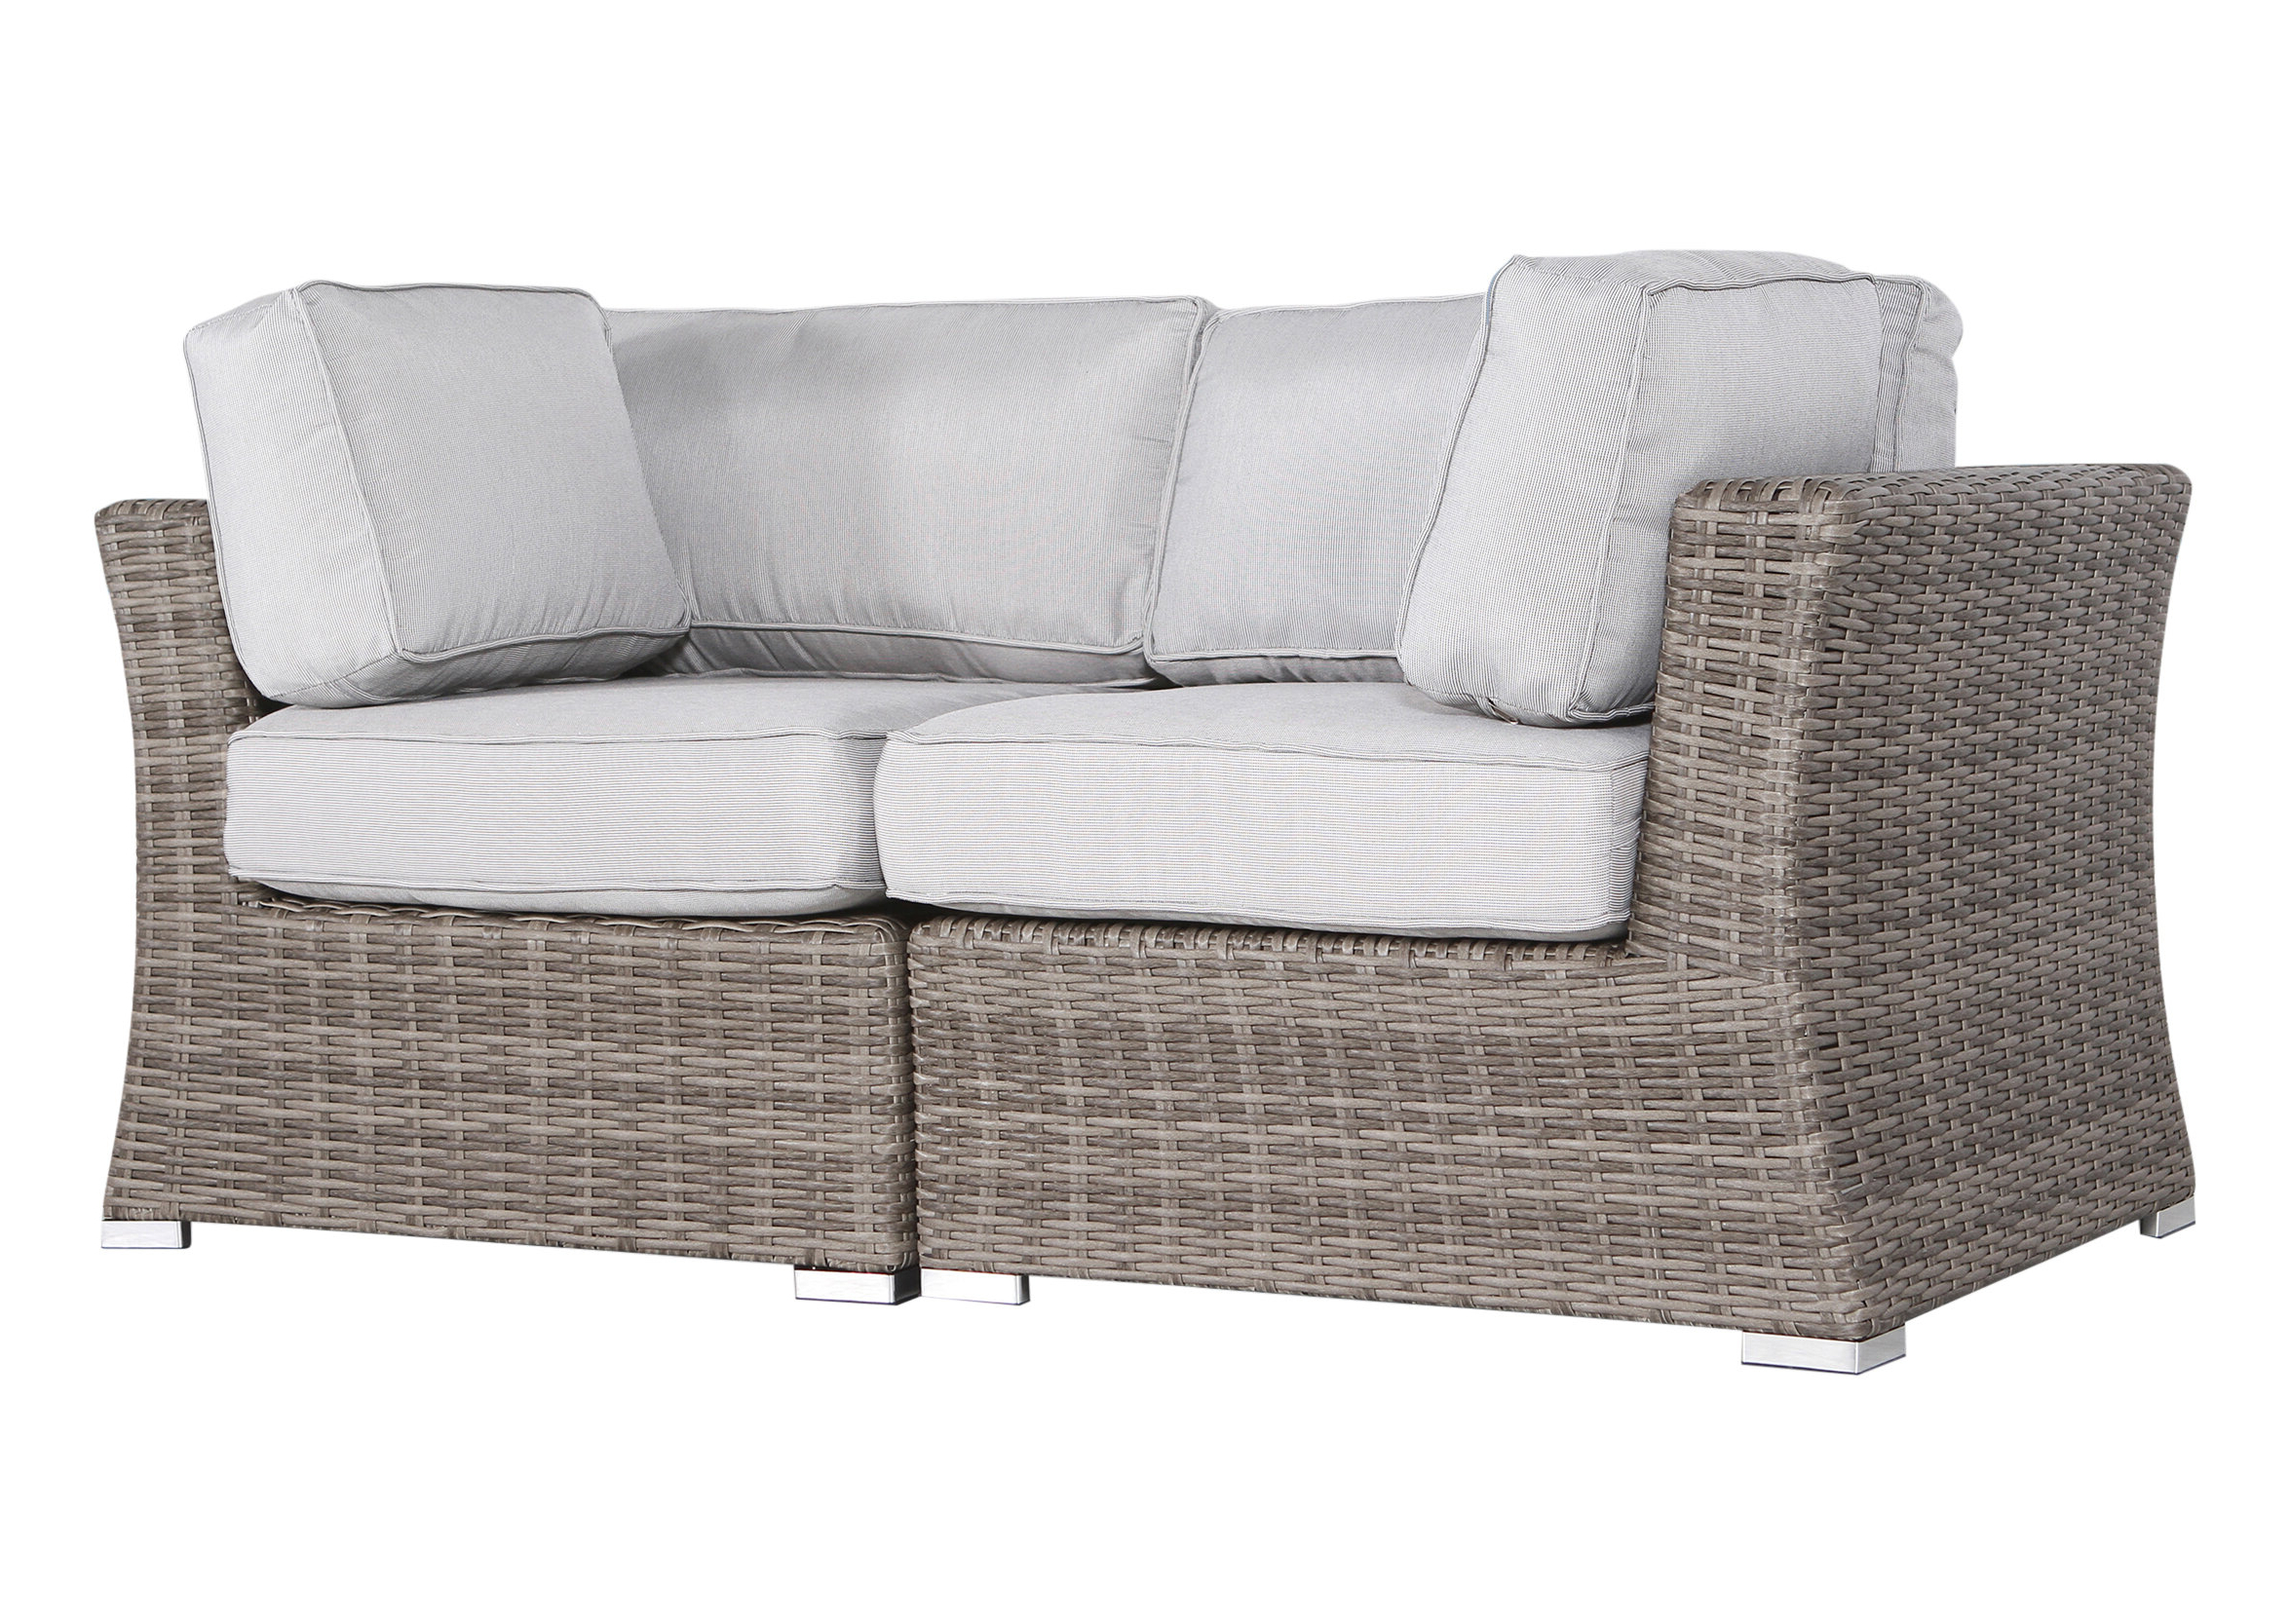 Huddleson Loveseats With Cushion Pertaining To Trendy Huddleson Contemporary Loveseat With Cushion (View 11 of 20)